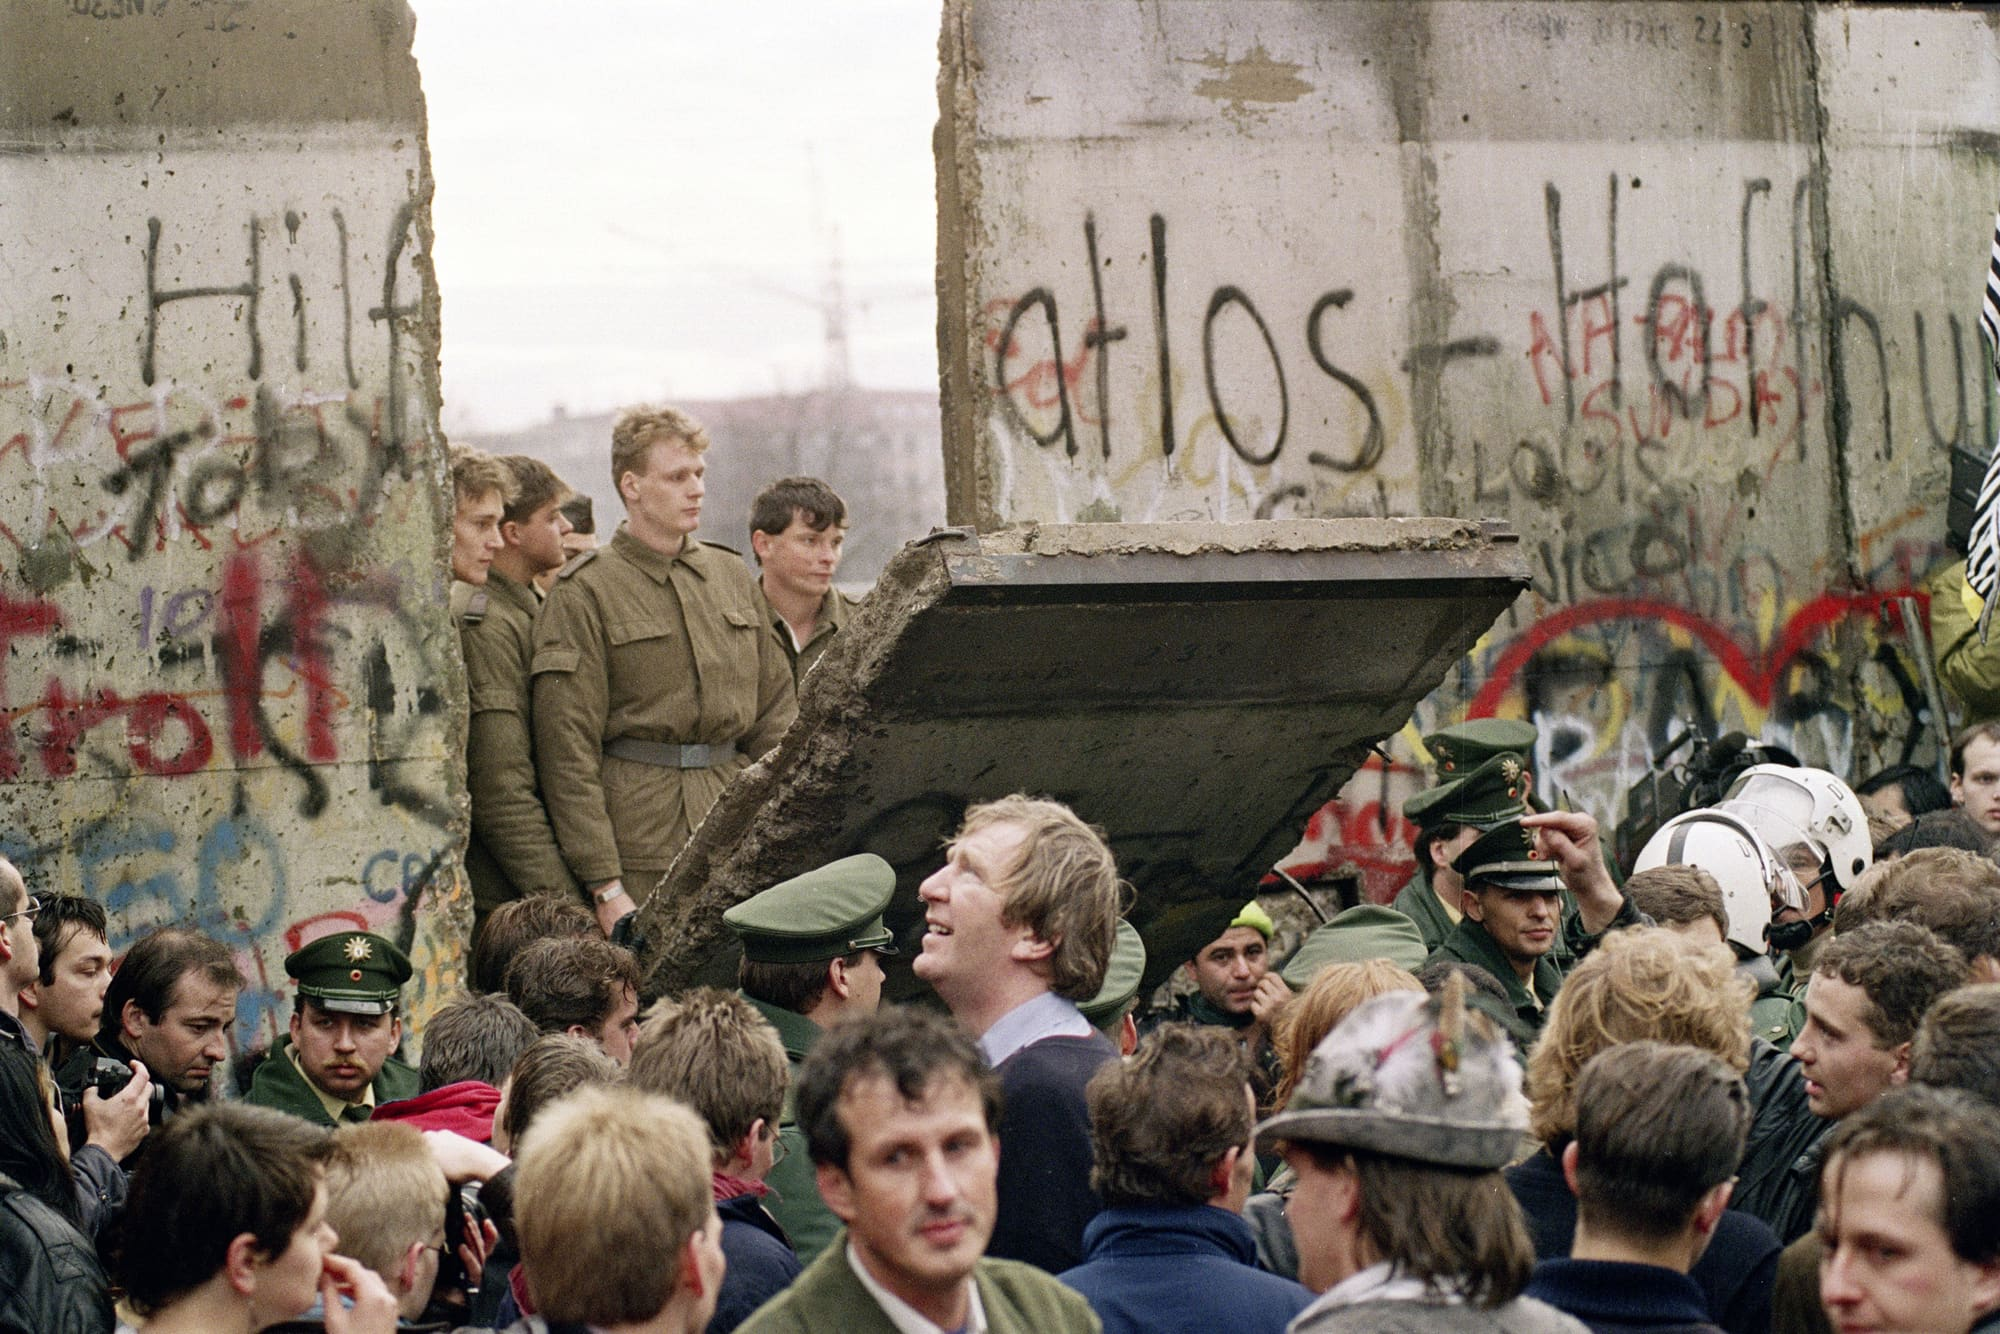 30 years after the Berlin Wall's fall, the US and its allies now confront an even more formidable competitor